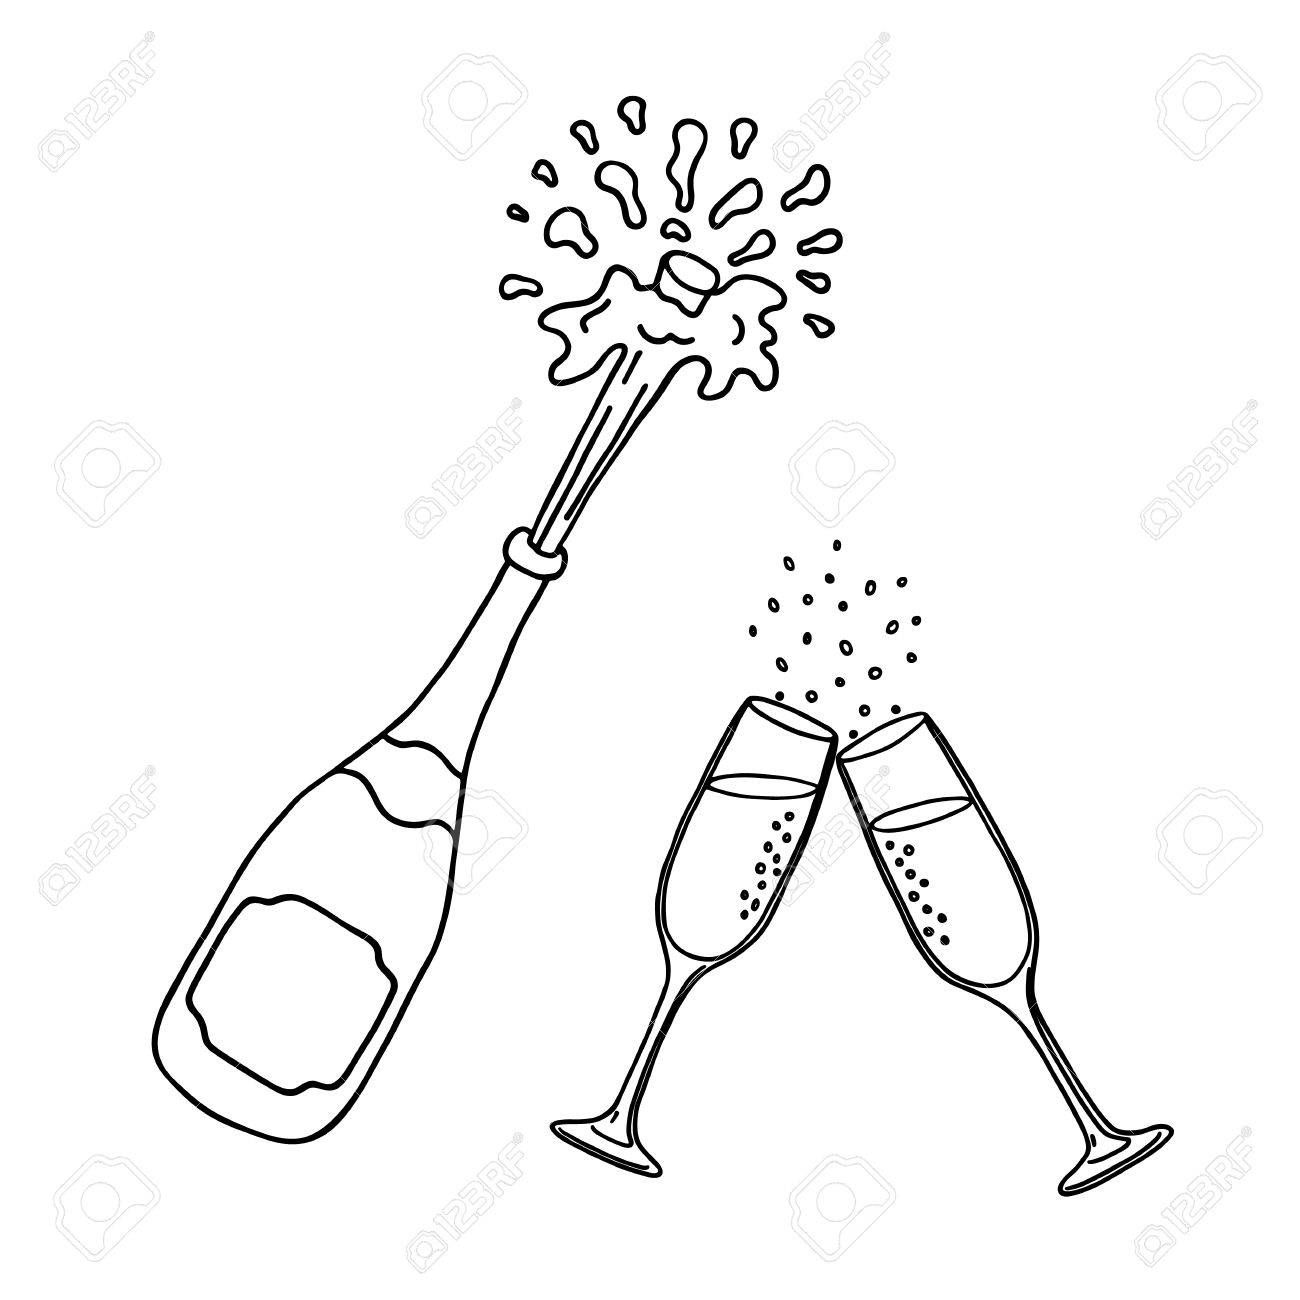 Bottle of champagne and champagne glasses - 63884891